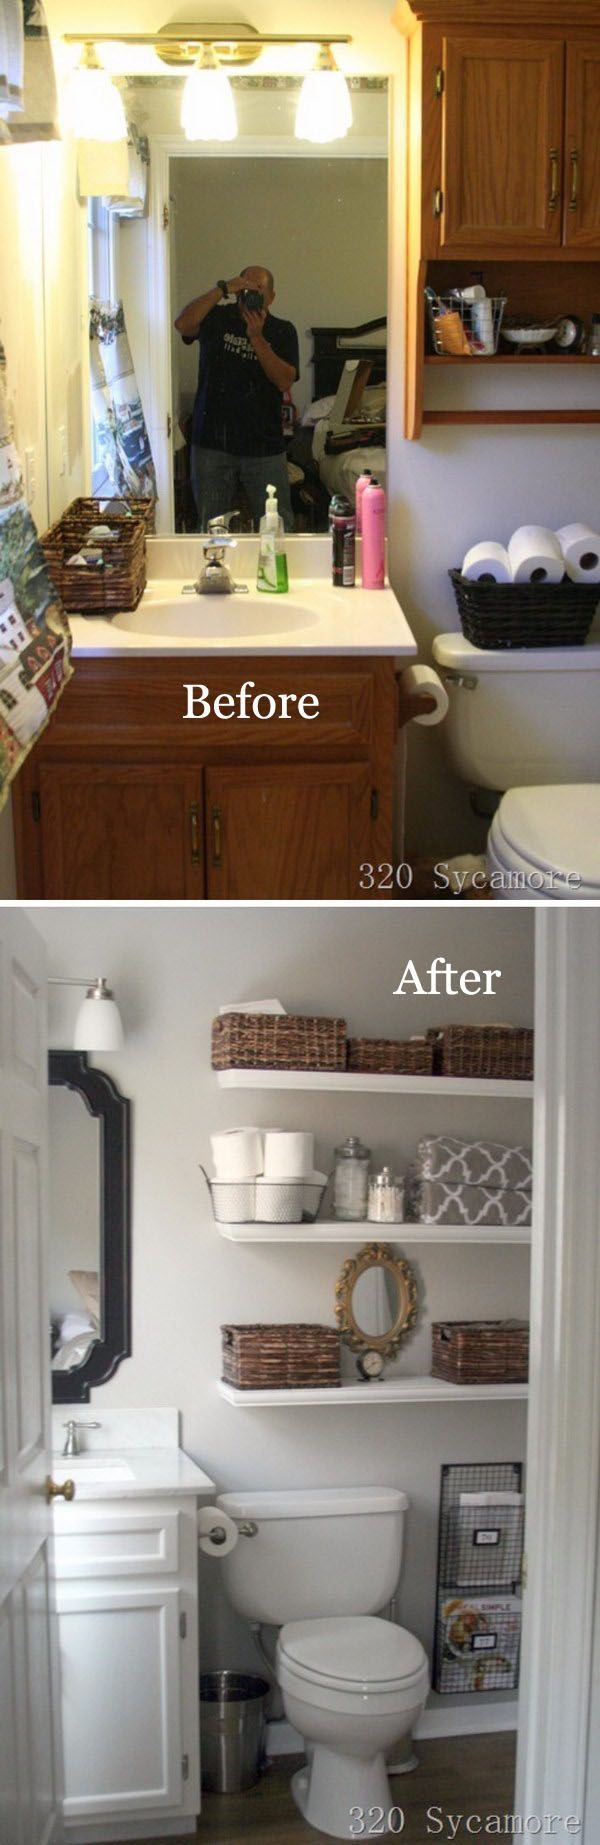 Small Bathrooms Tips brilliant bathroom decorating ideas for small bathrooms storage